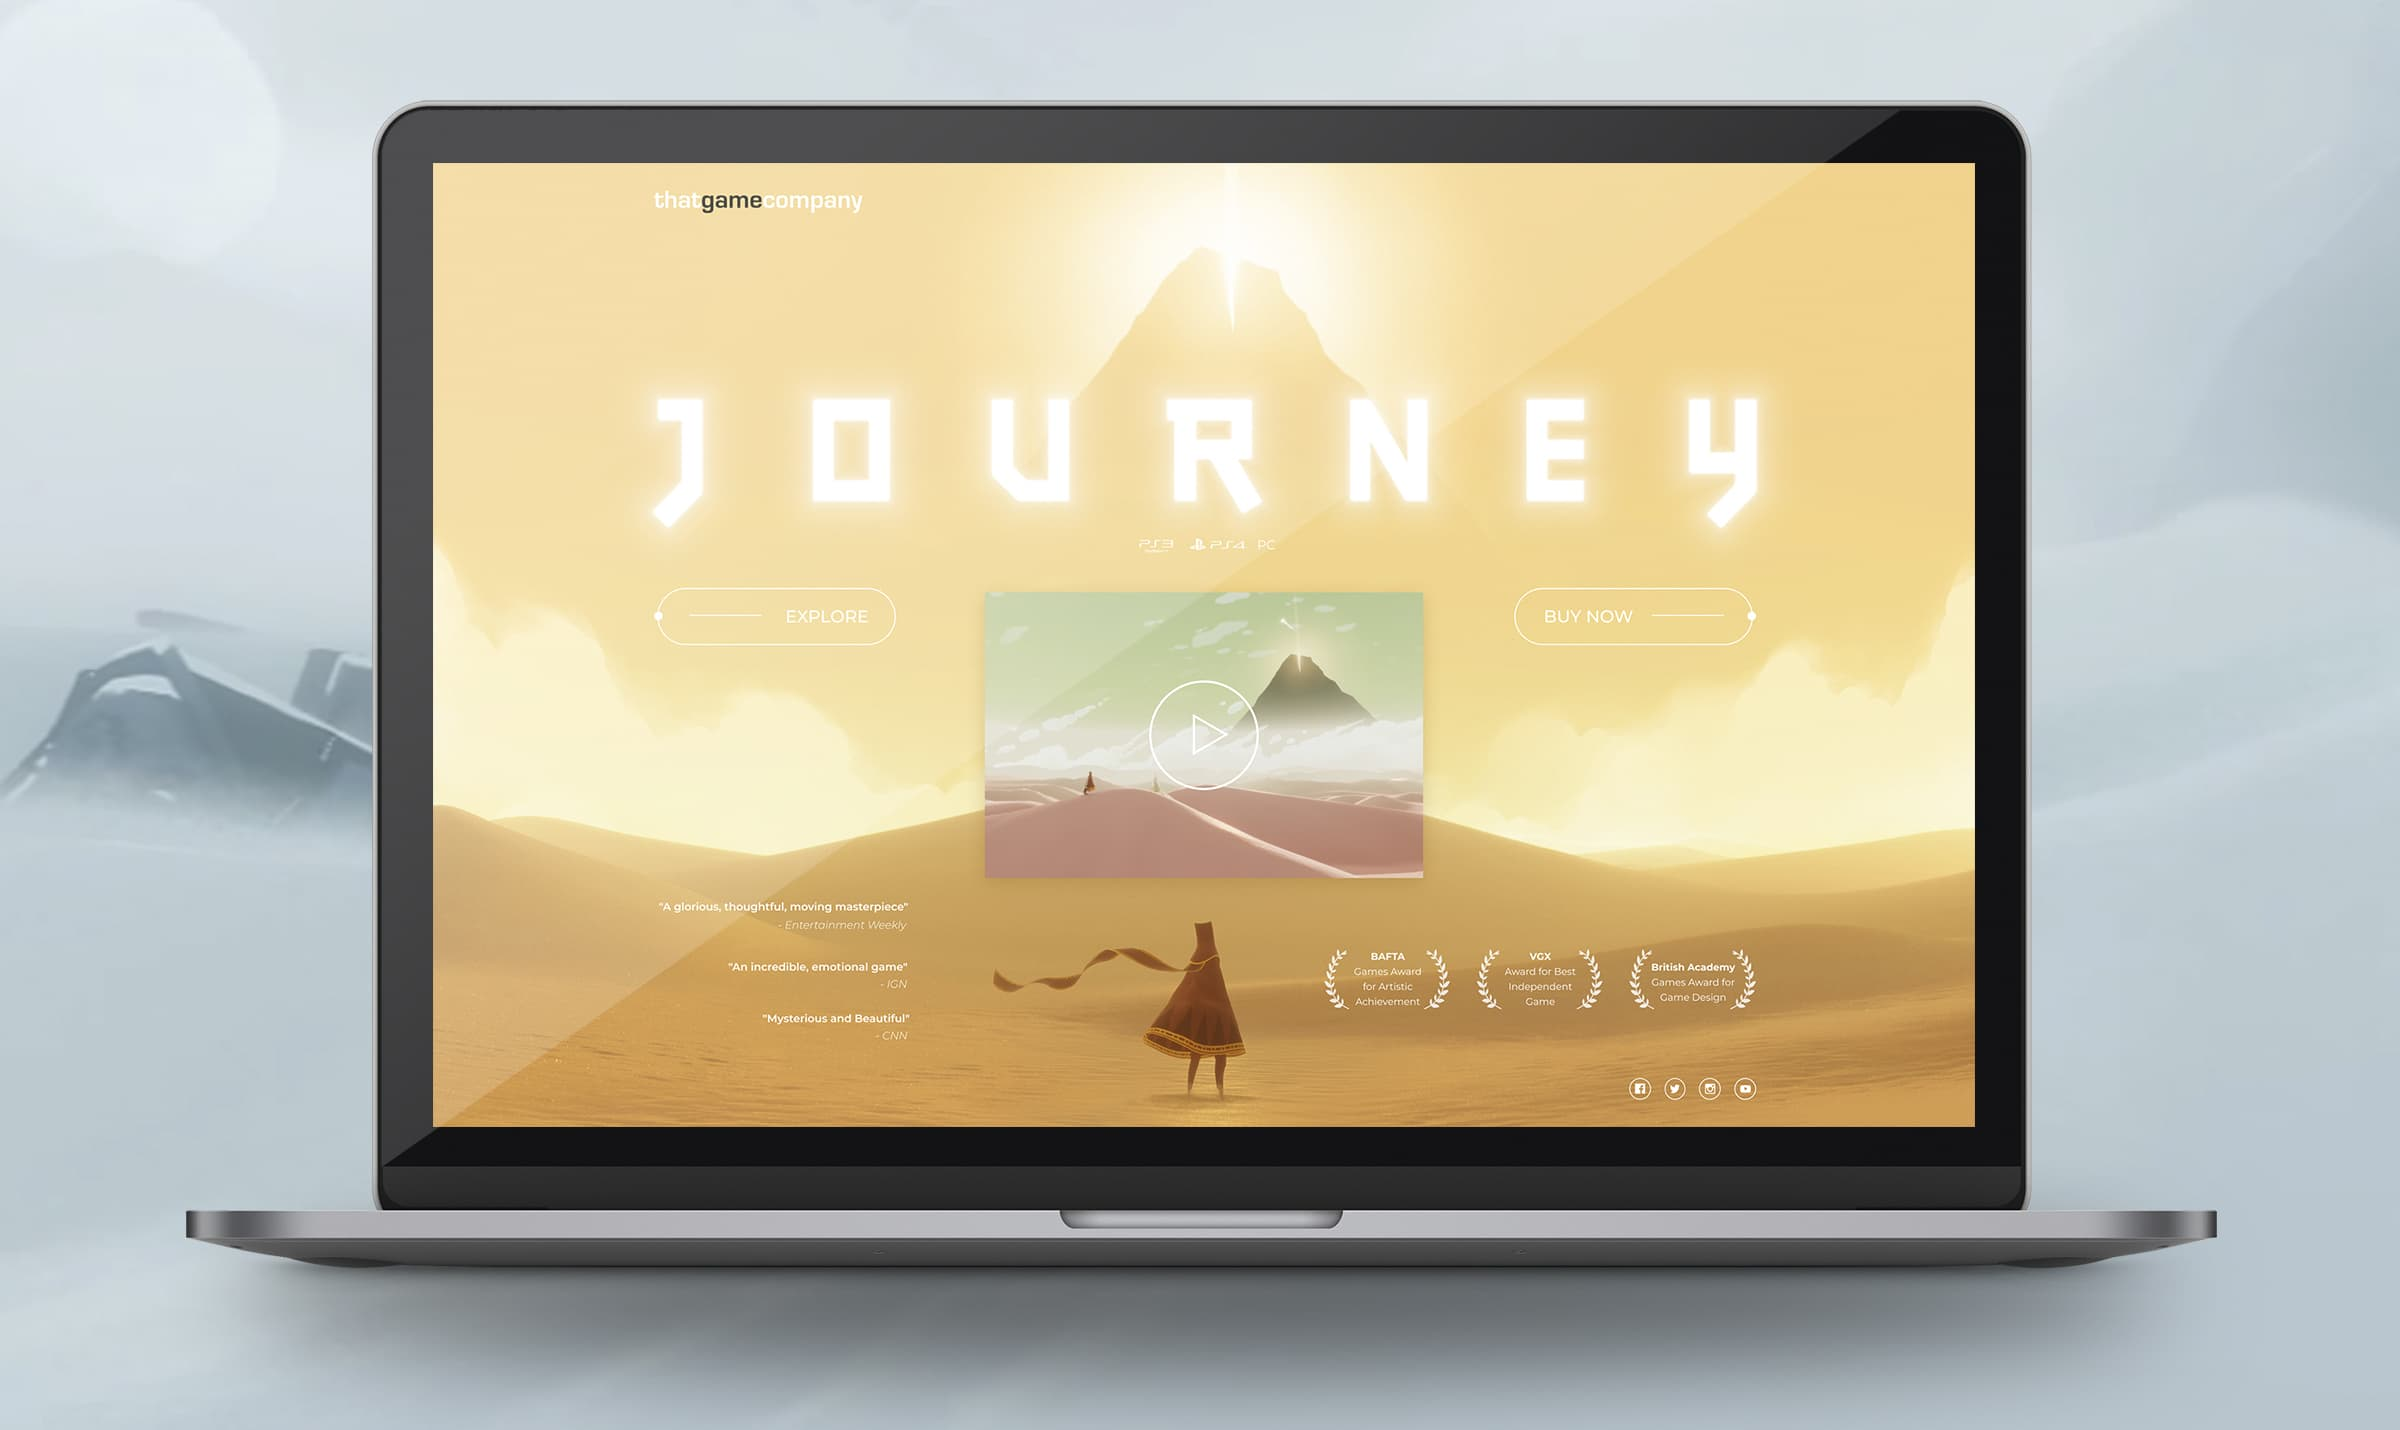 Journey game website landing page from UIGarage